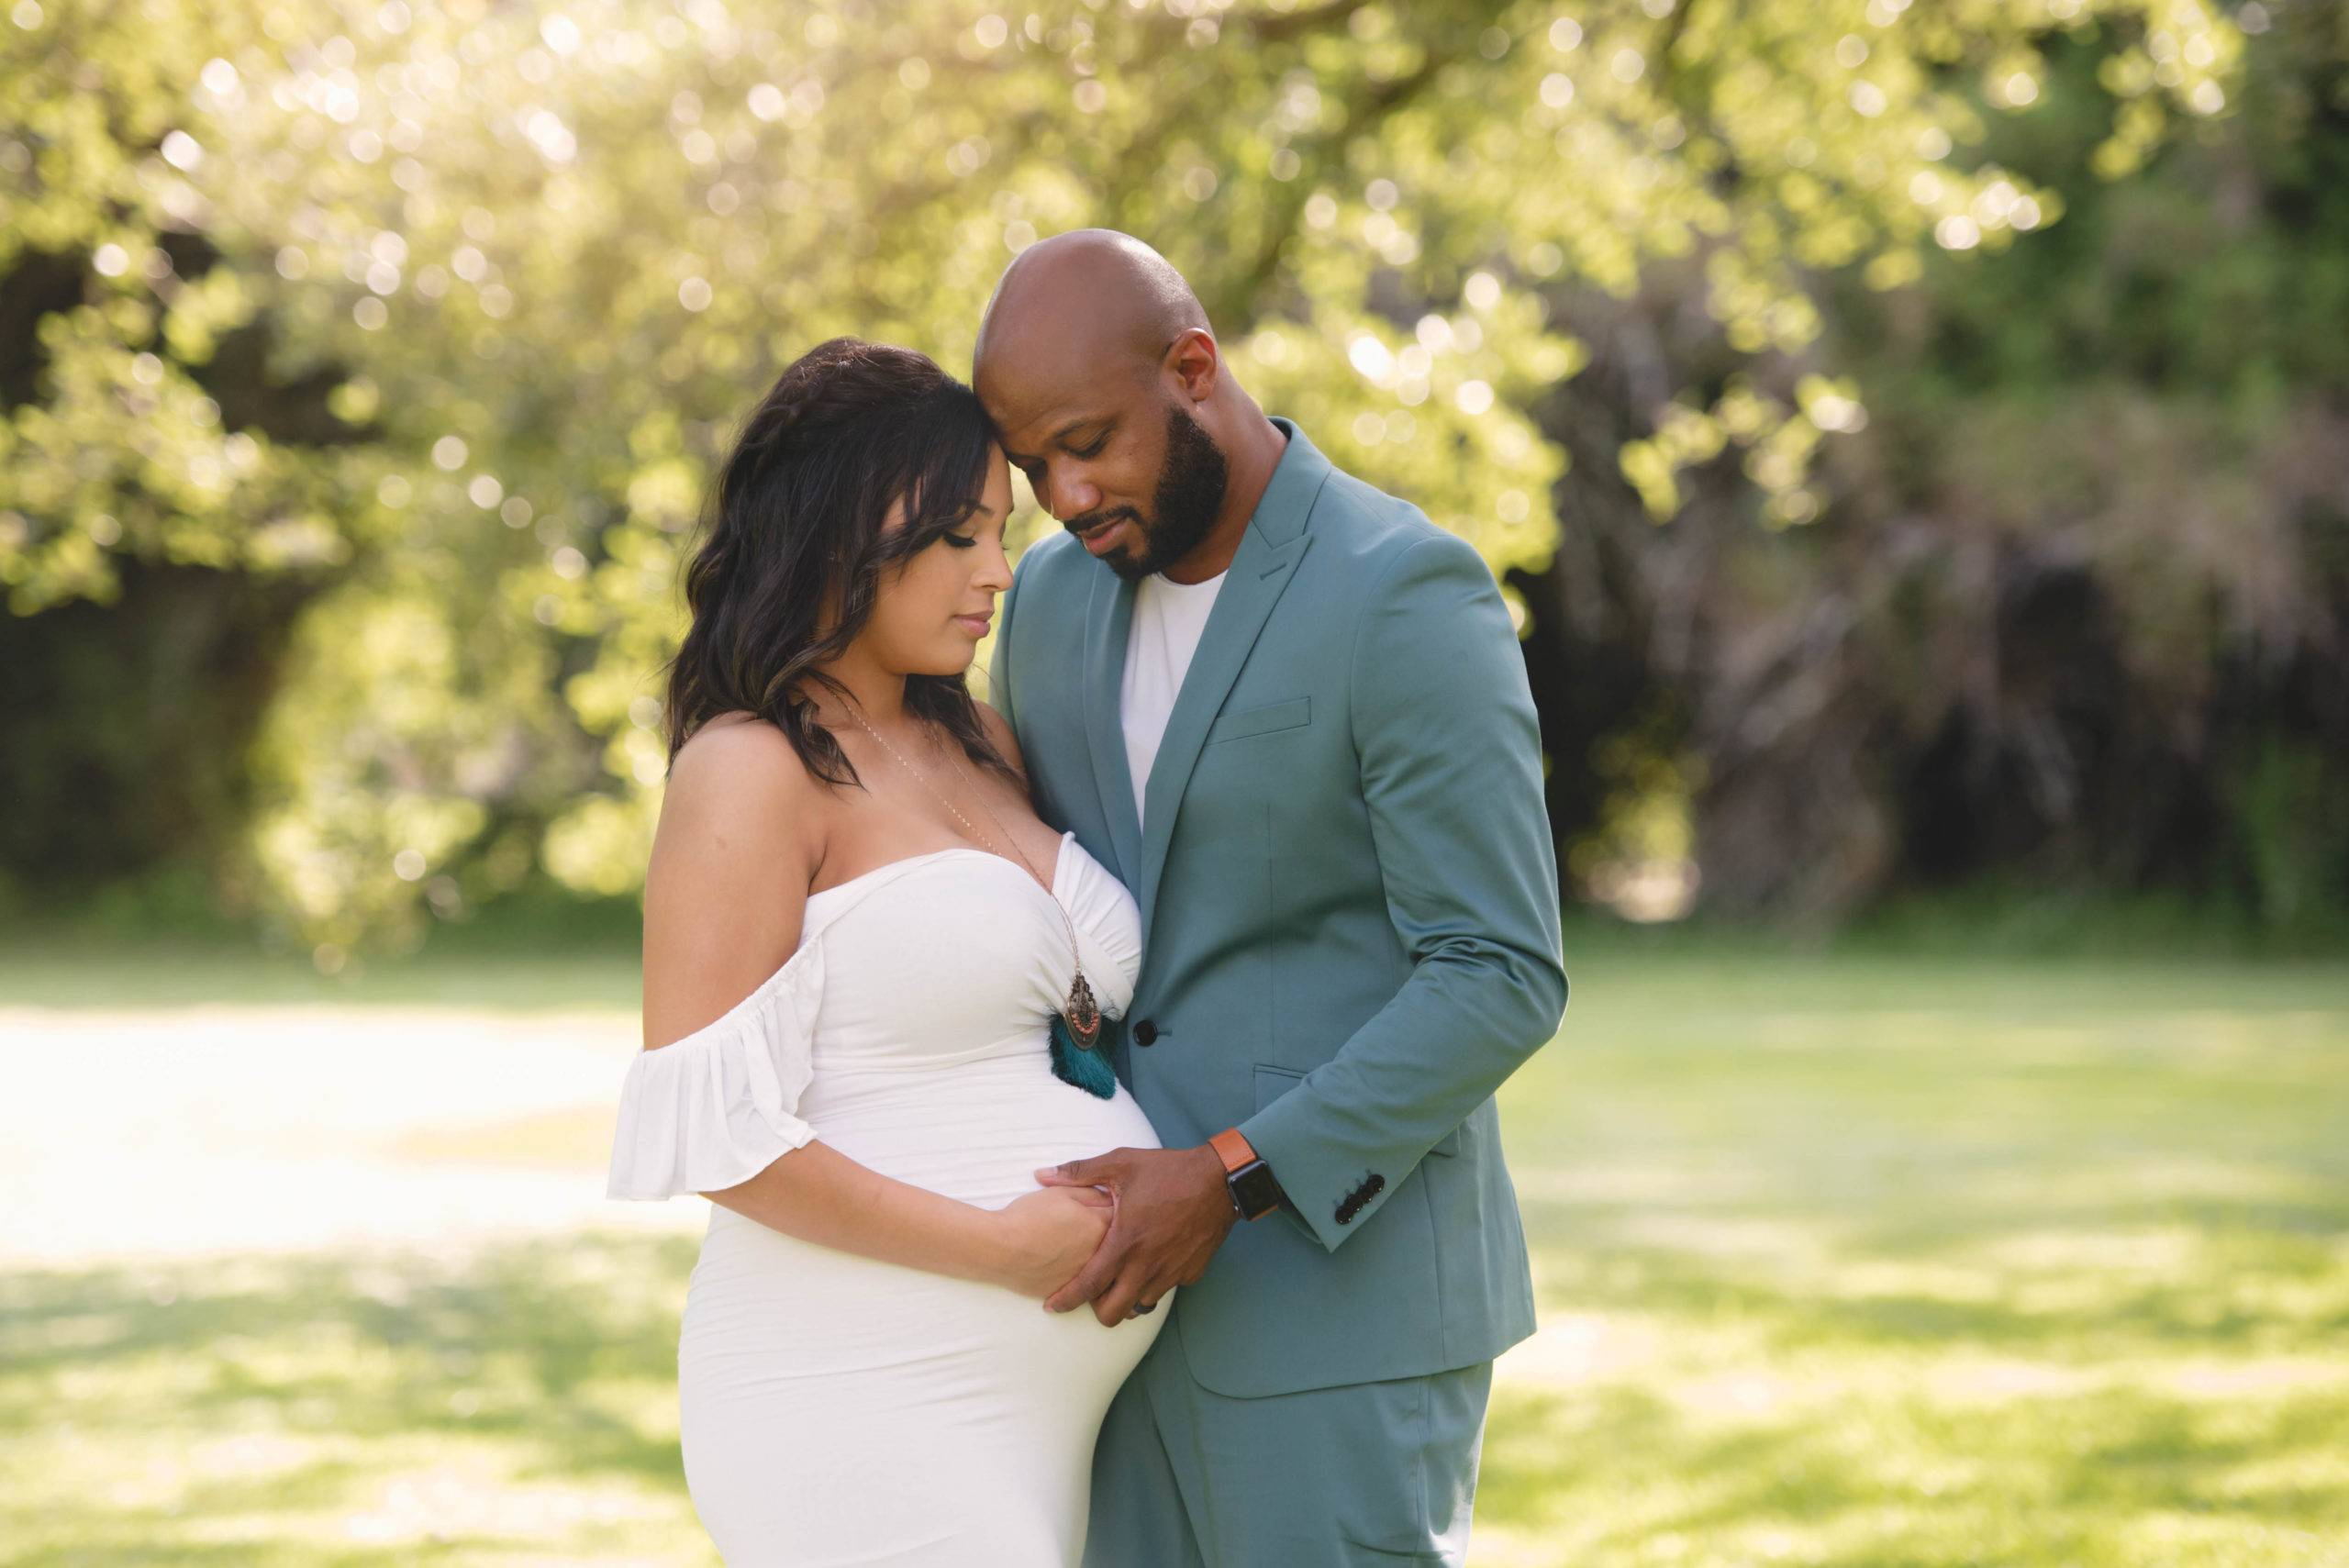 Maternity Session at Fairfax House – Aristine and Javis